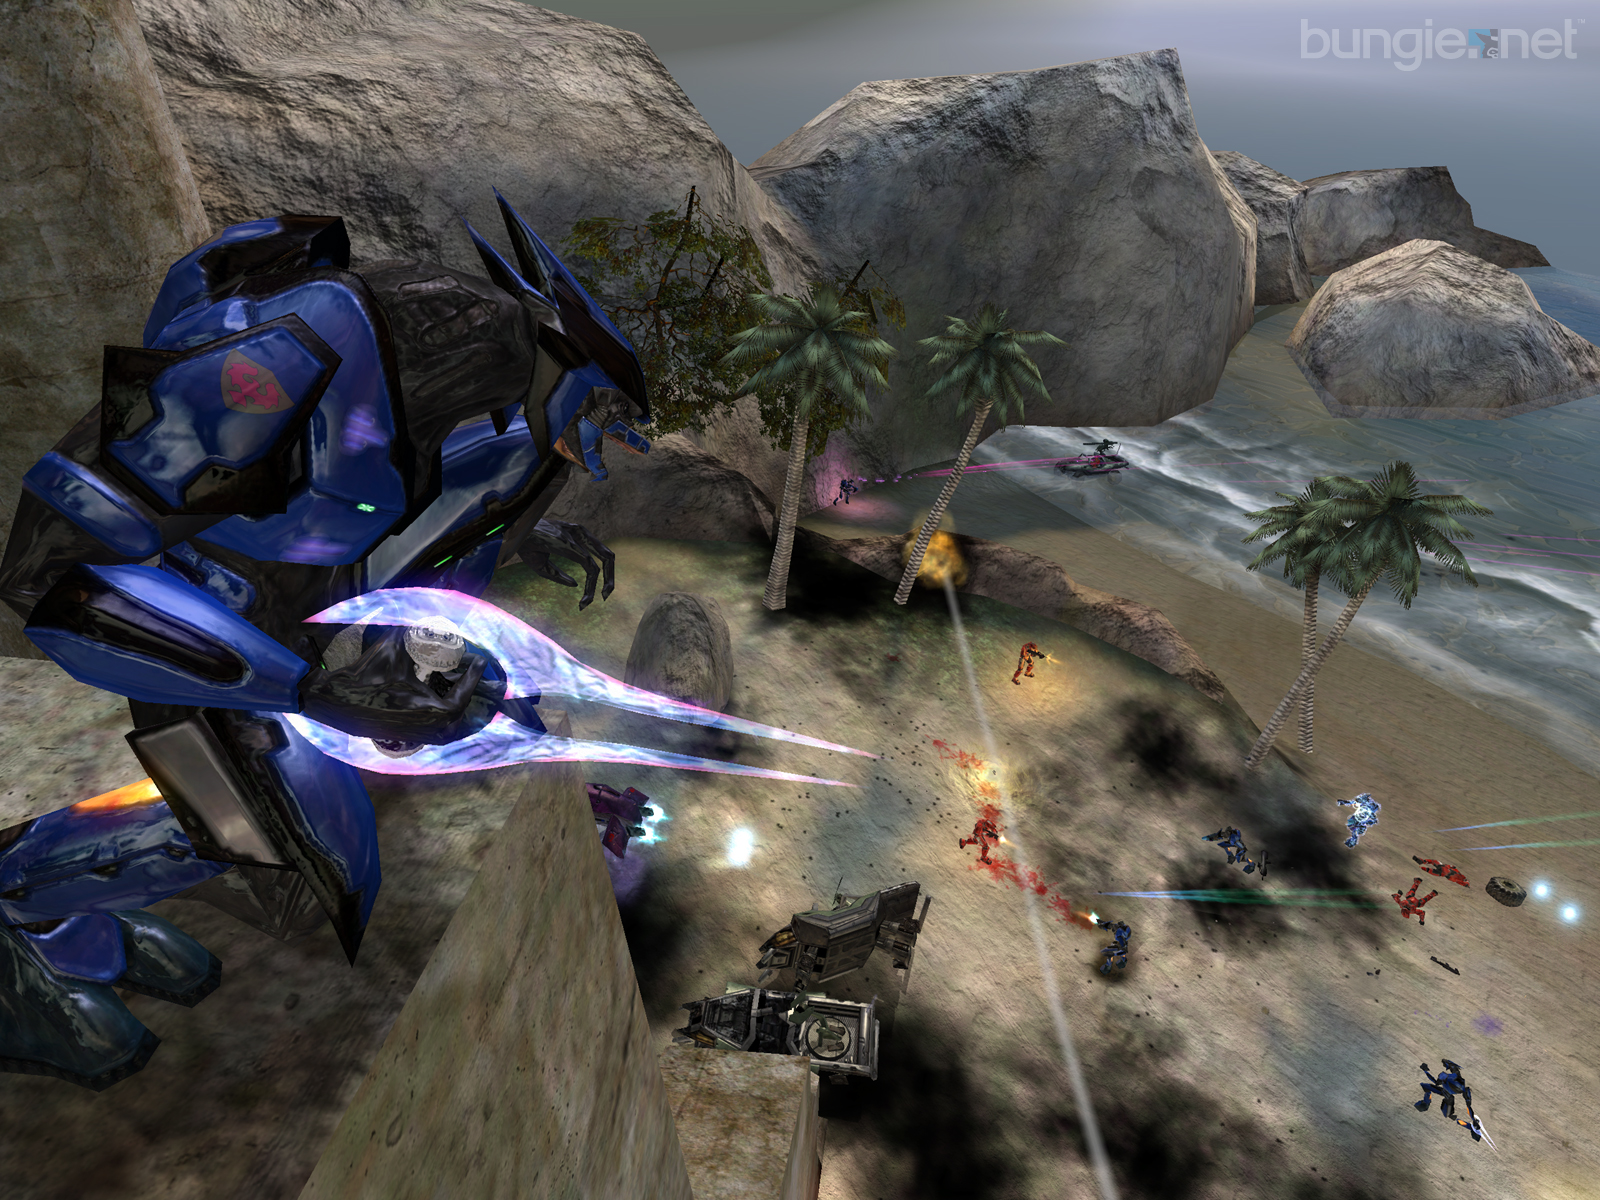 Modders have taken halo online and given it multiplayer - halo 3 multiplayer is now on pc